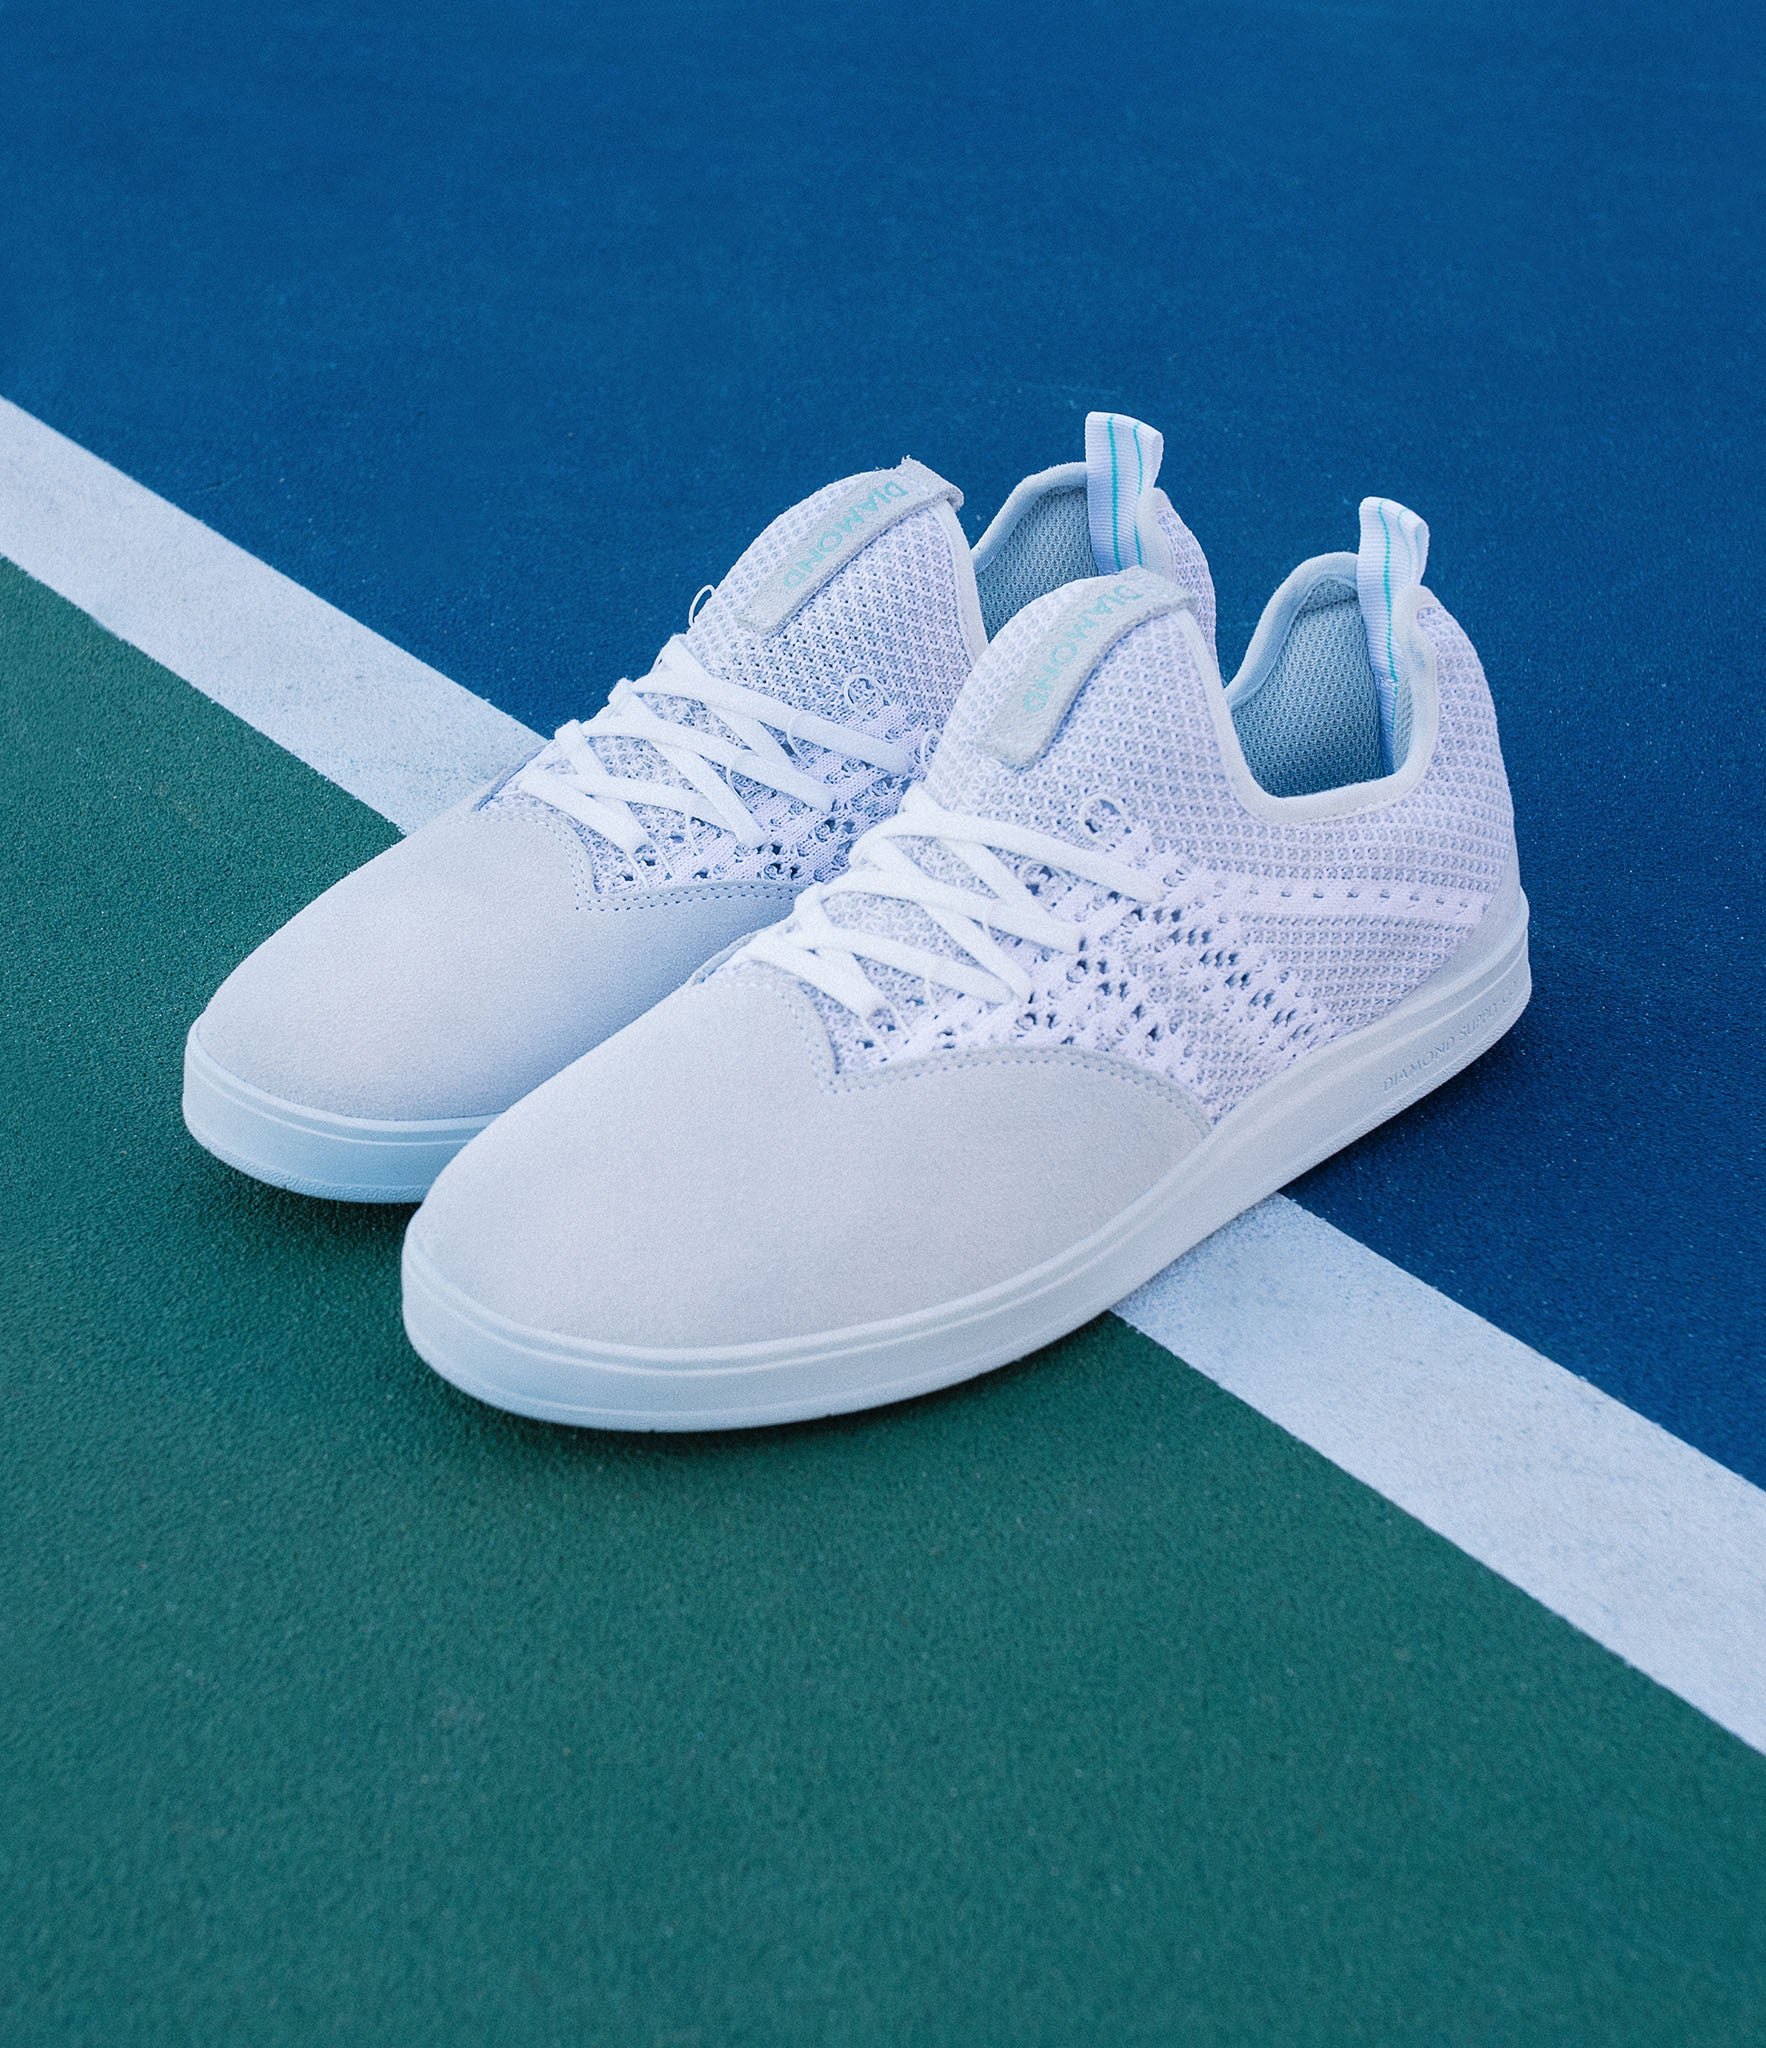 The All Day in White by Diamond Footwear - Diamond Supply Co. 646d6057bcb